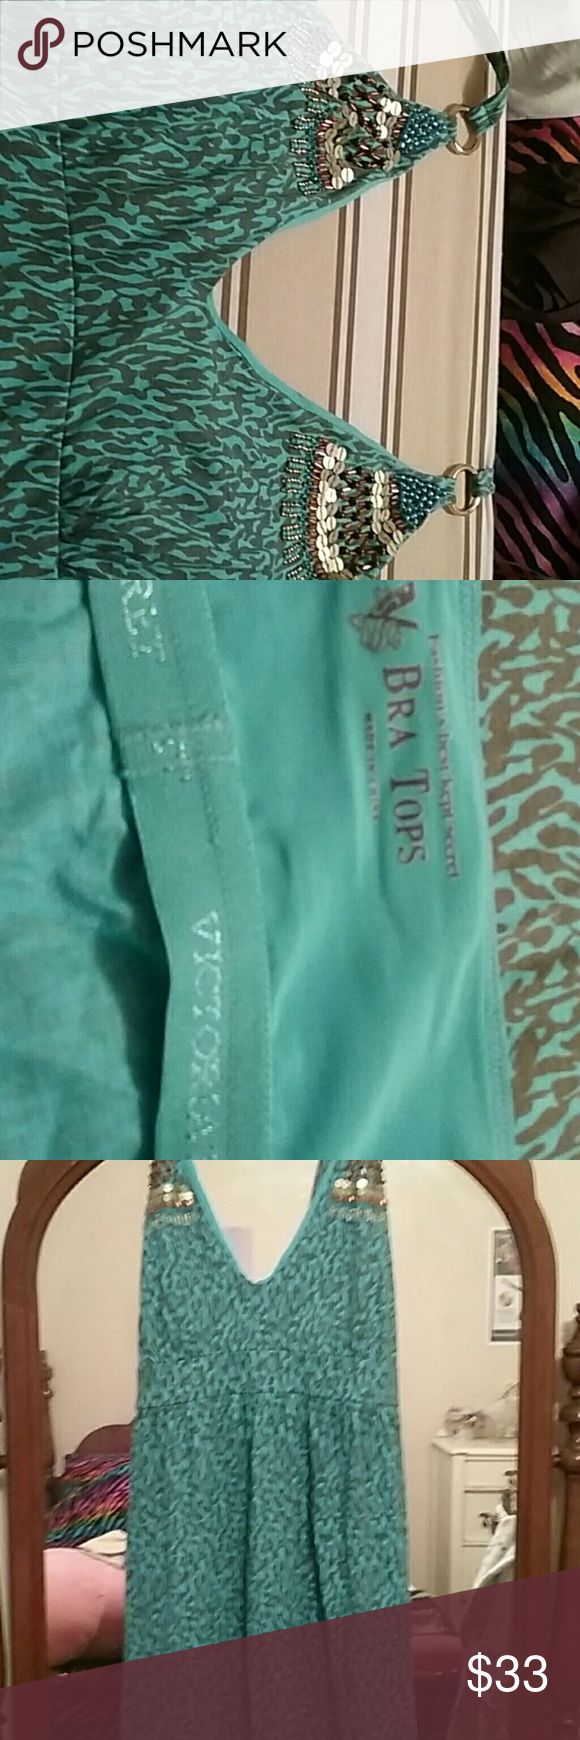 Victoria's Secret beach dress with built-In bra. EUC.  Size L.  Just above knee length.  Beautiful blue animal print.  Tirs behind neck.  Beautiful heading on top. Victoria's Secret Dresses Backless